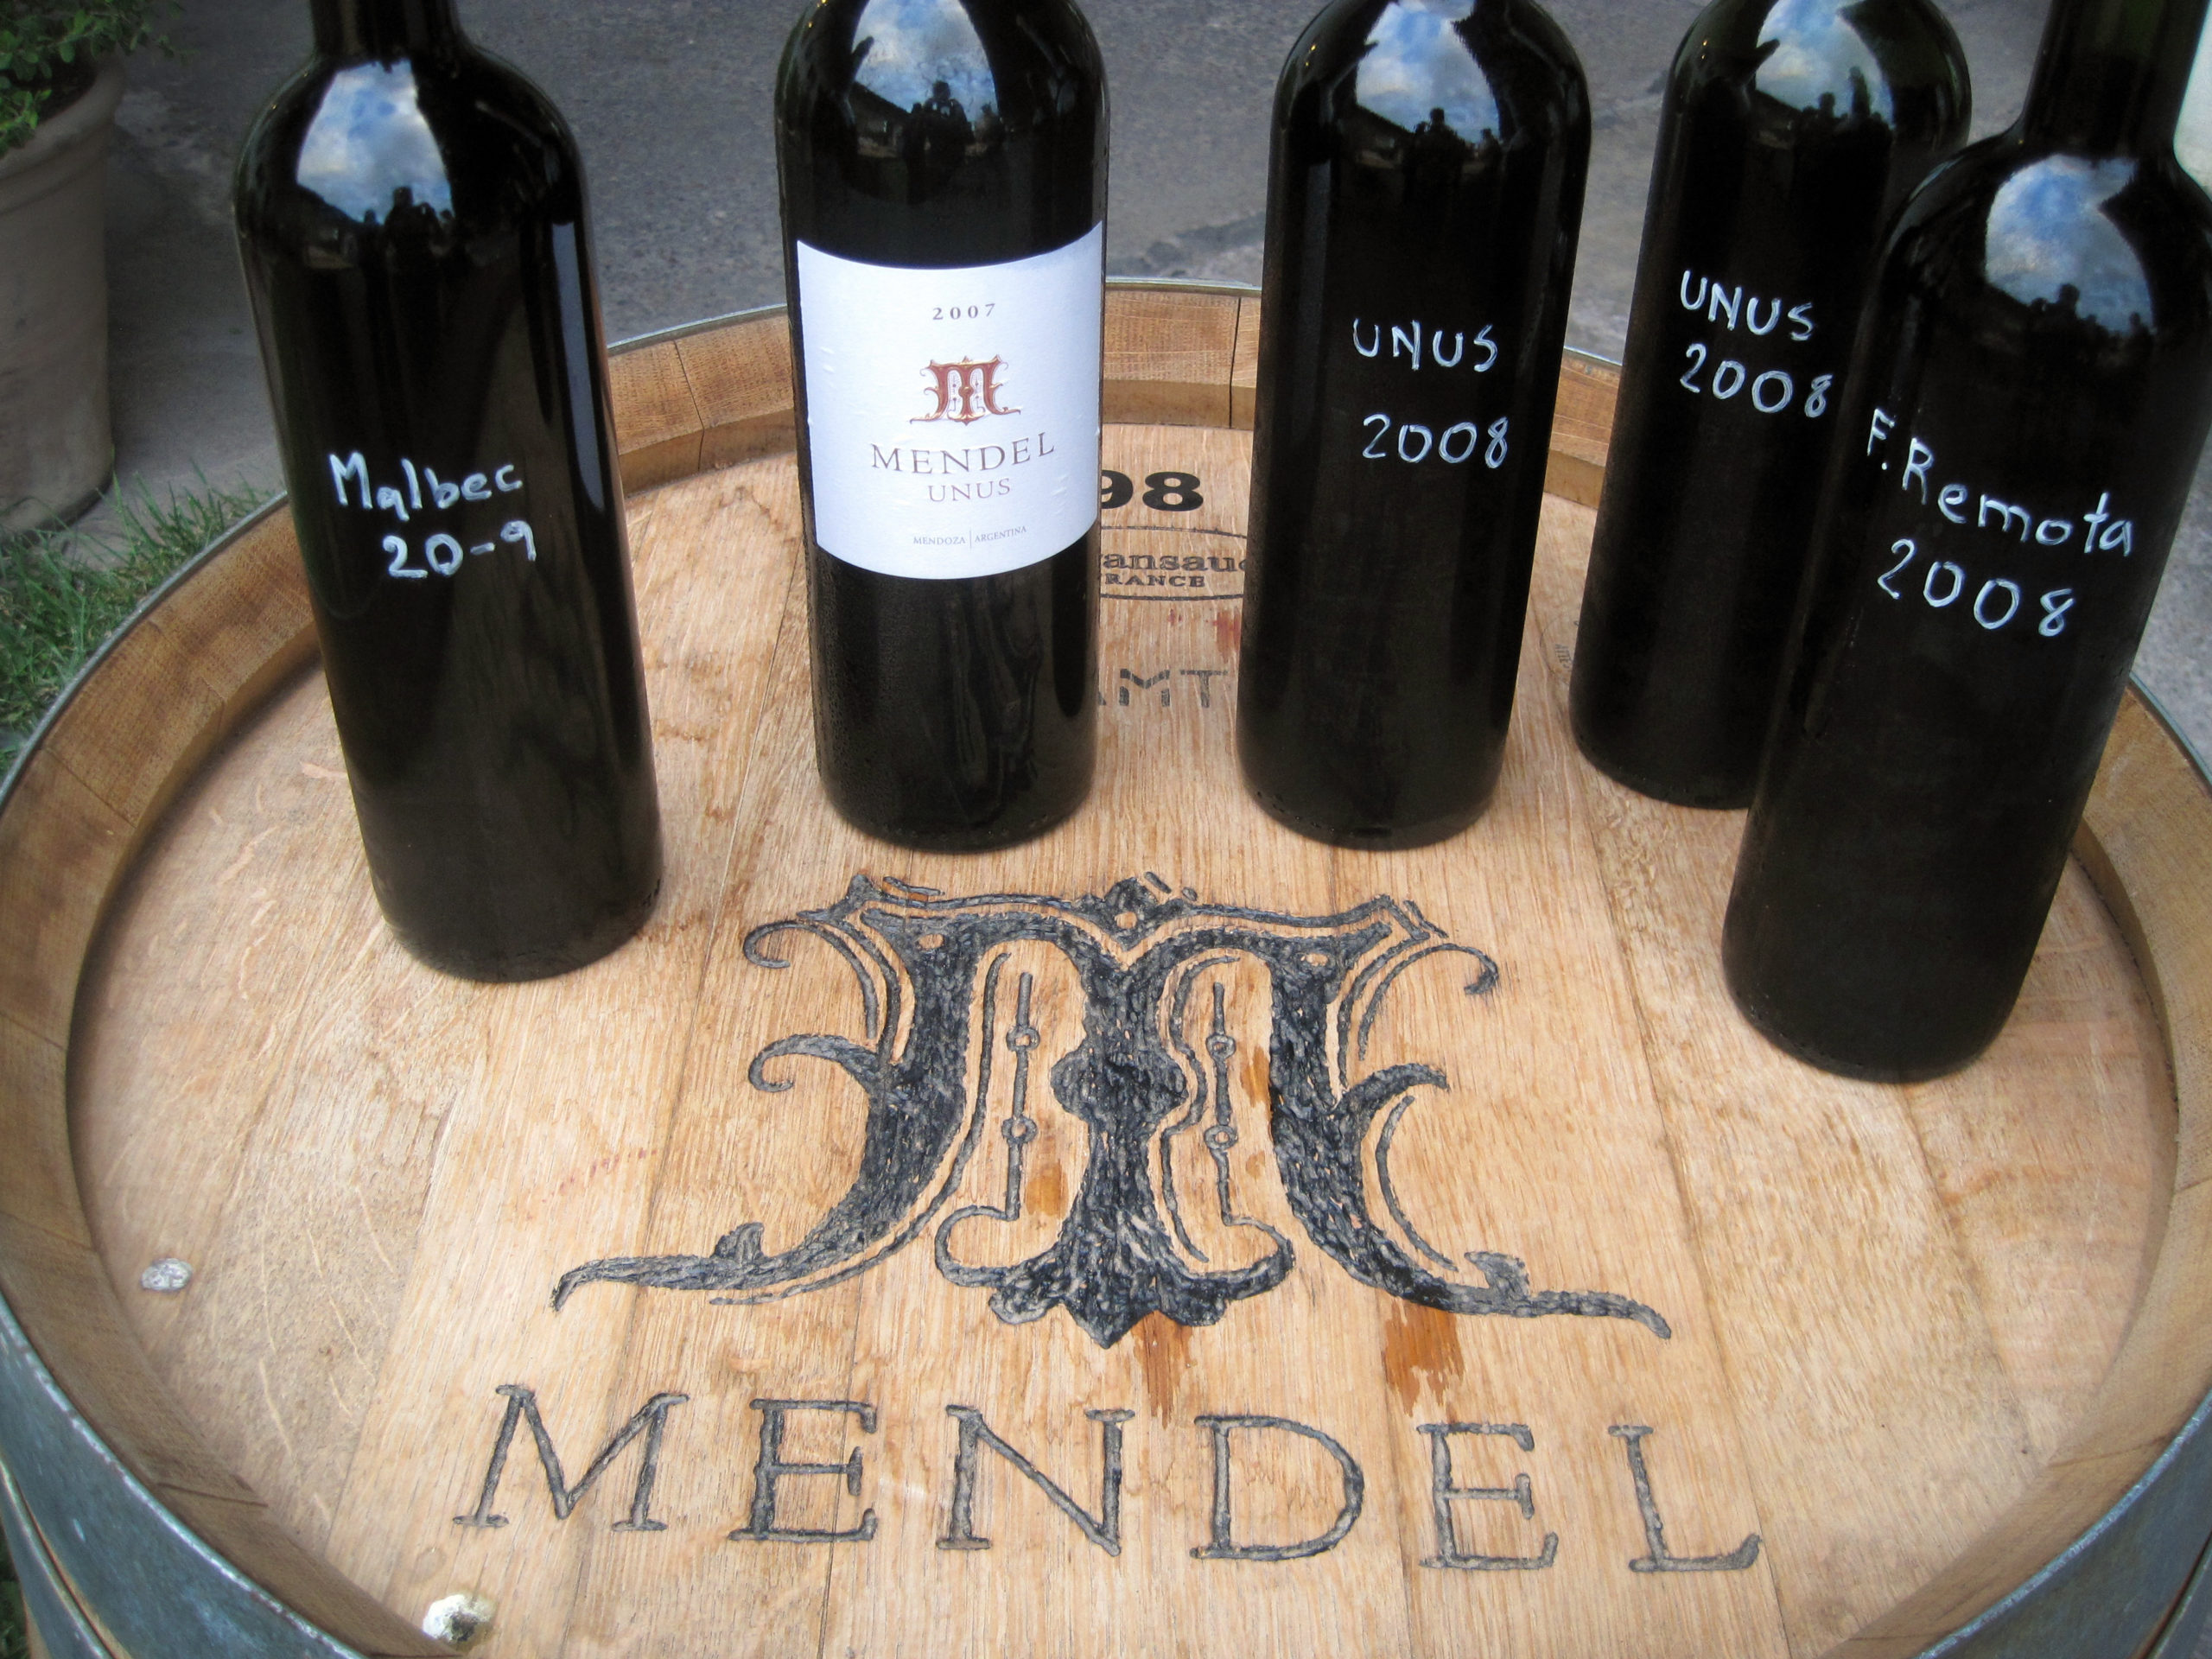 Argentinian Cabernet Sauvignon Wines from